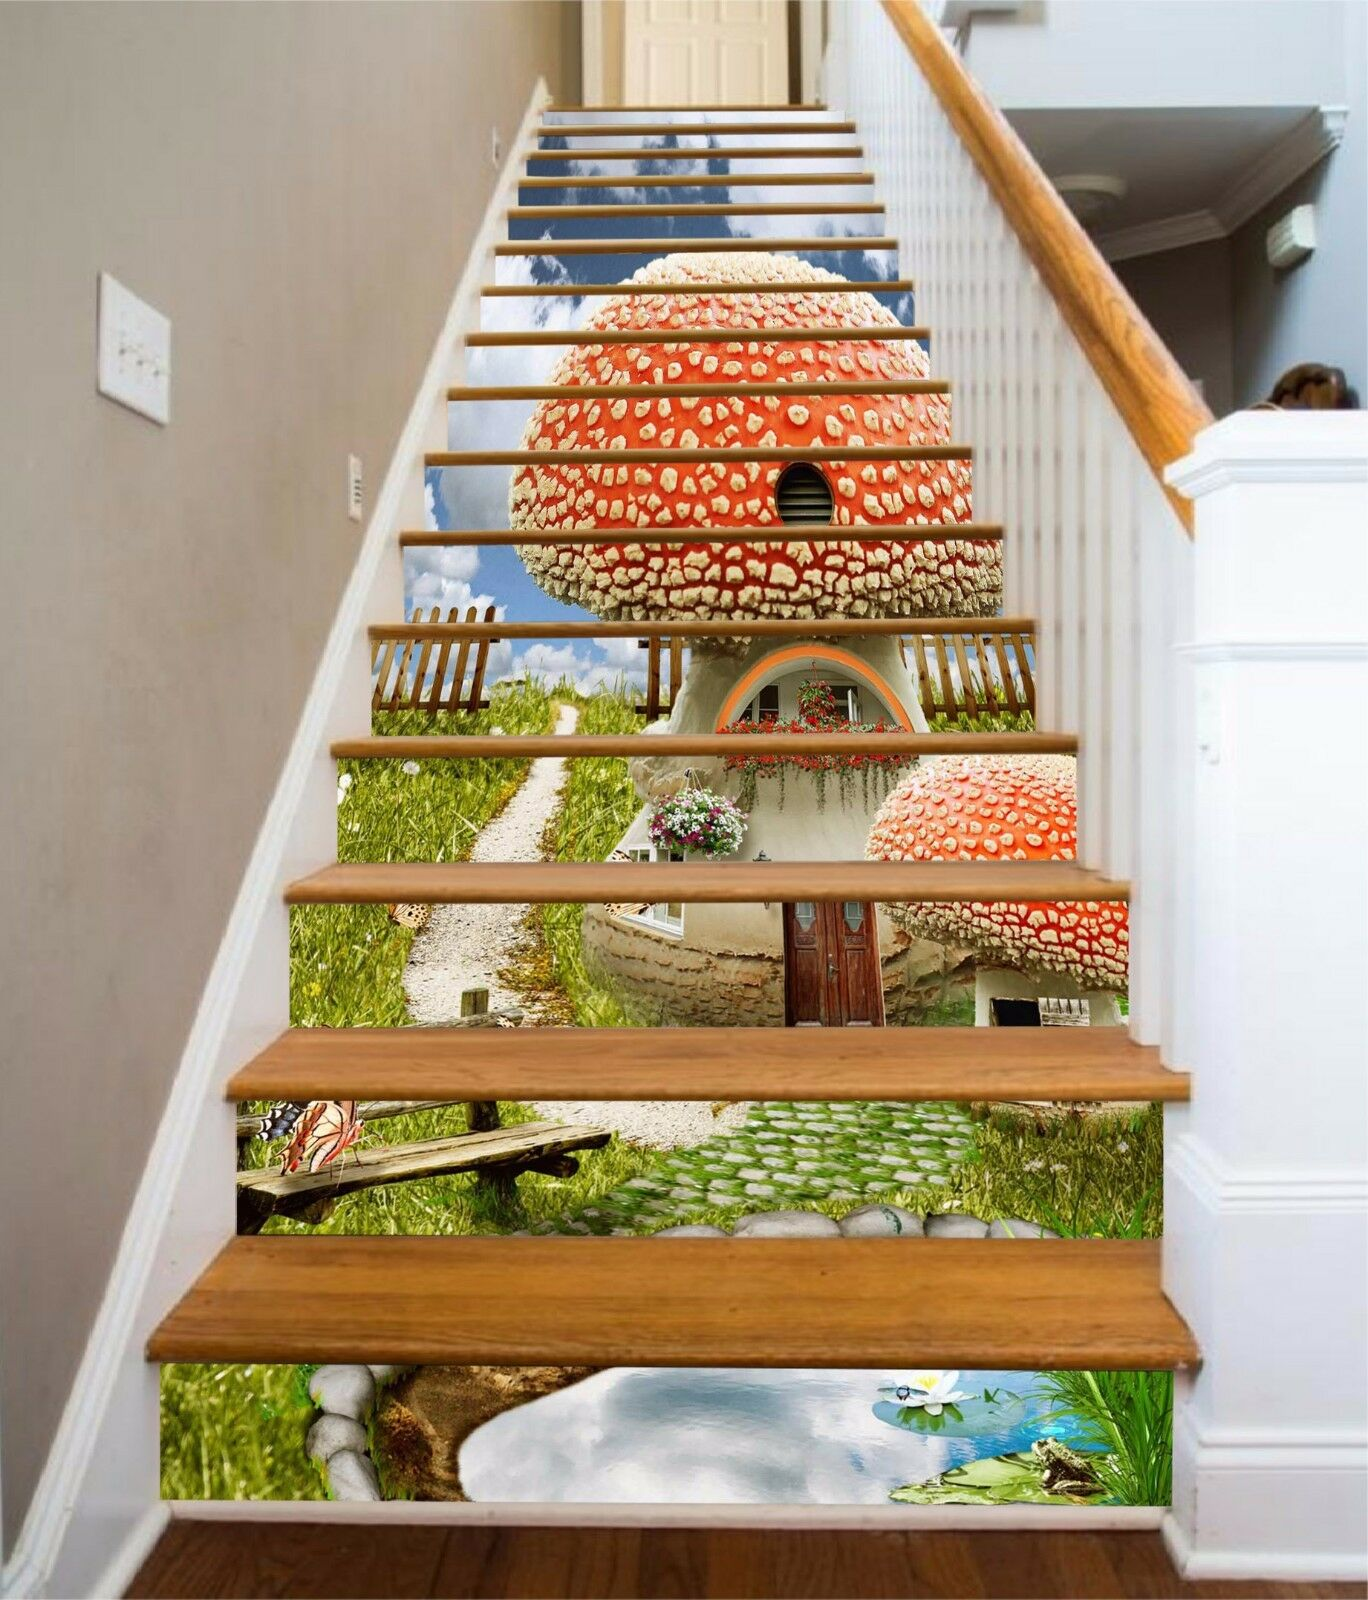 3D Cute Houses 223 Stair Risers Decoration Photo Mural Vinyl Decal Wallpaper AU